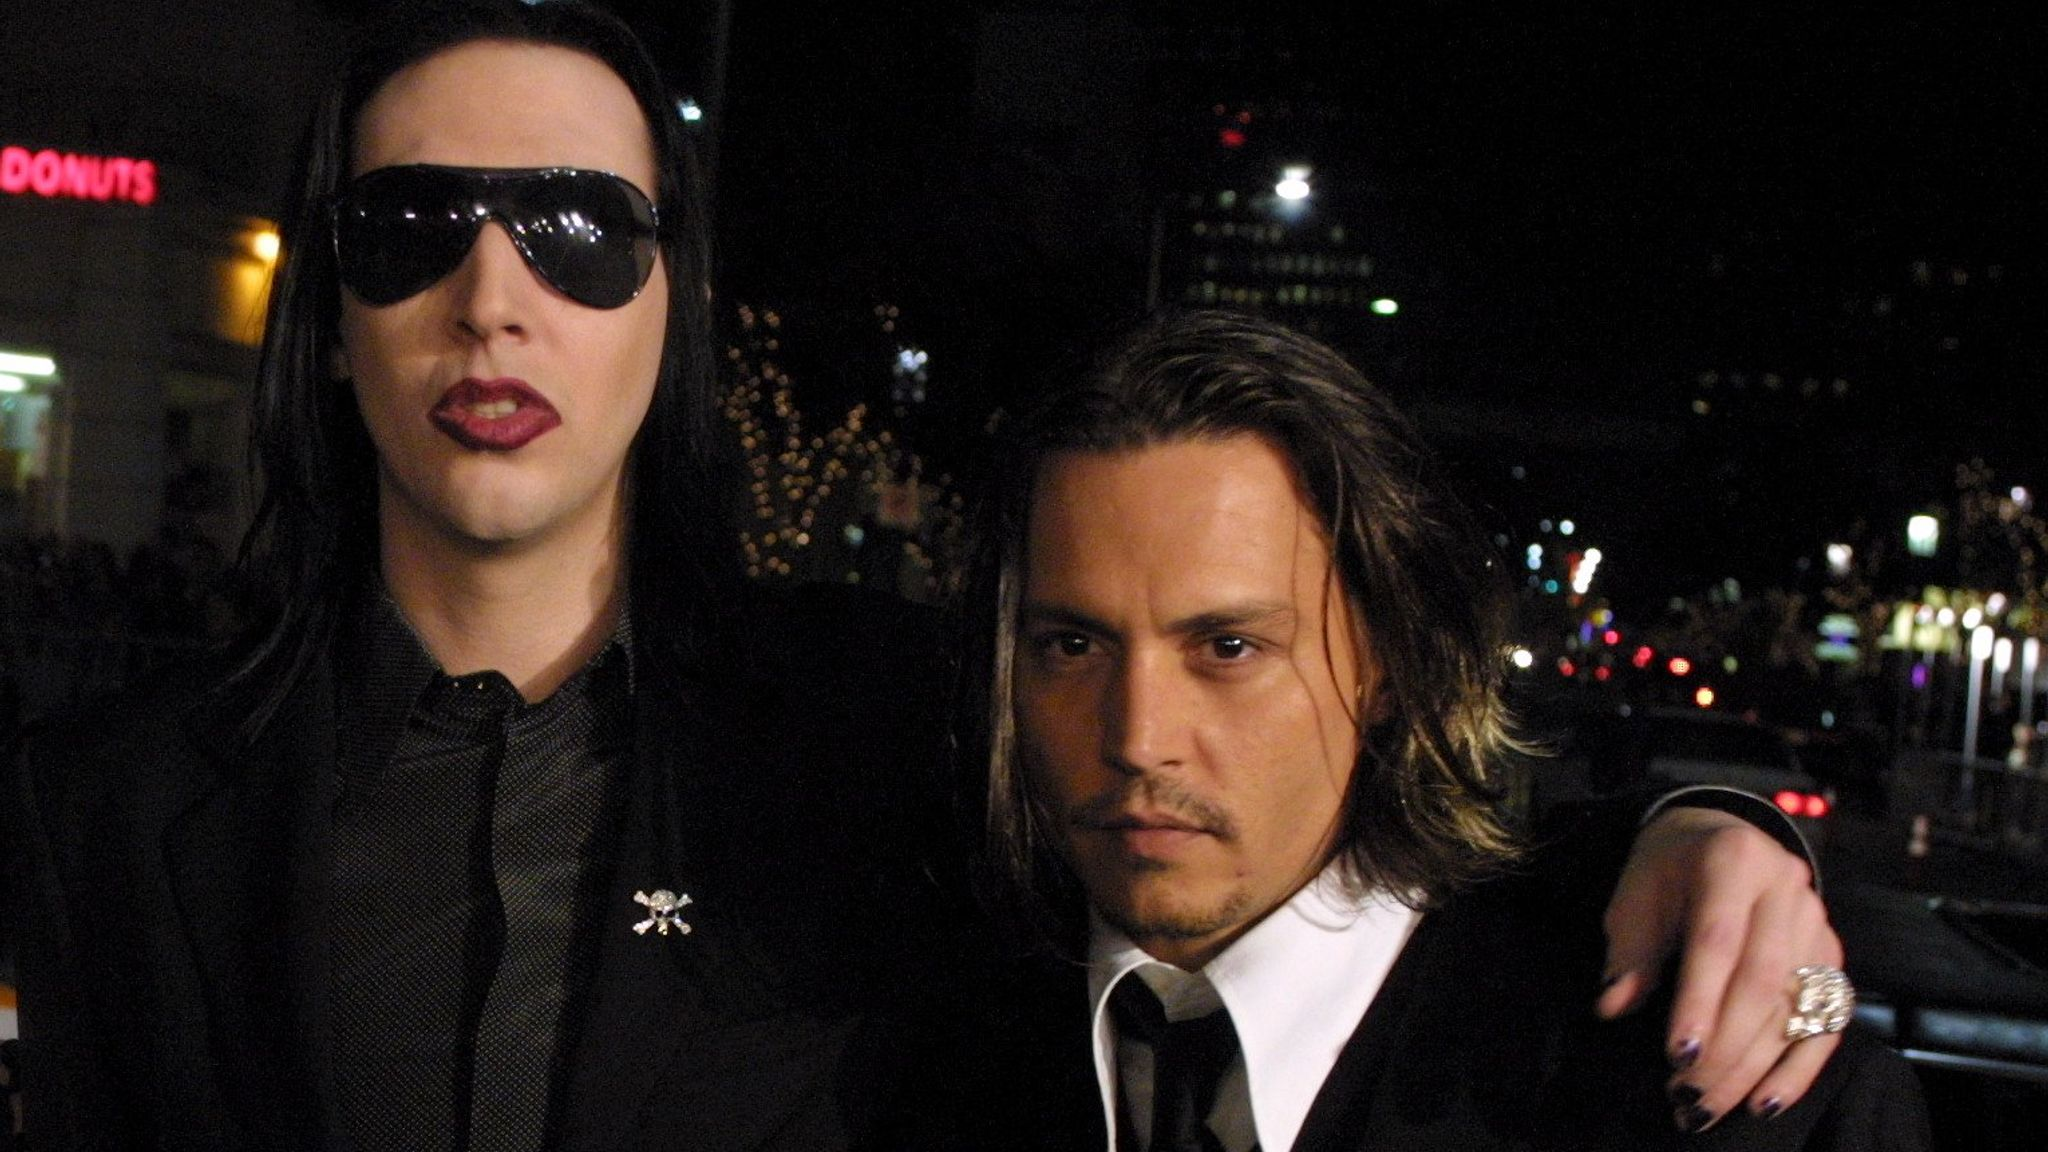 Marilyn Manson and Johnny Depp in 2001. Pic: Bei/Shutterstock Premiere of 'From Hell'